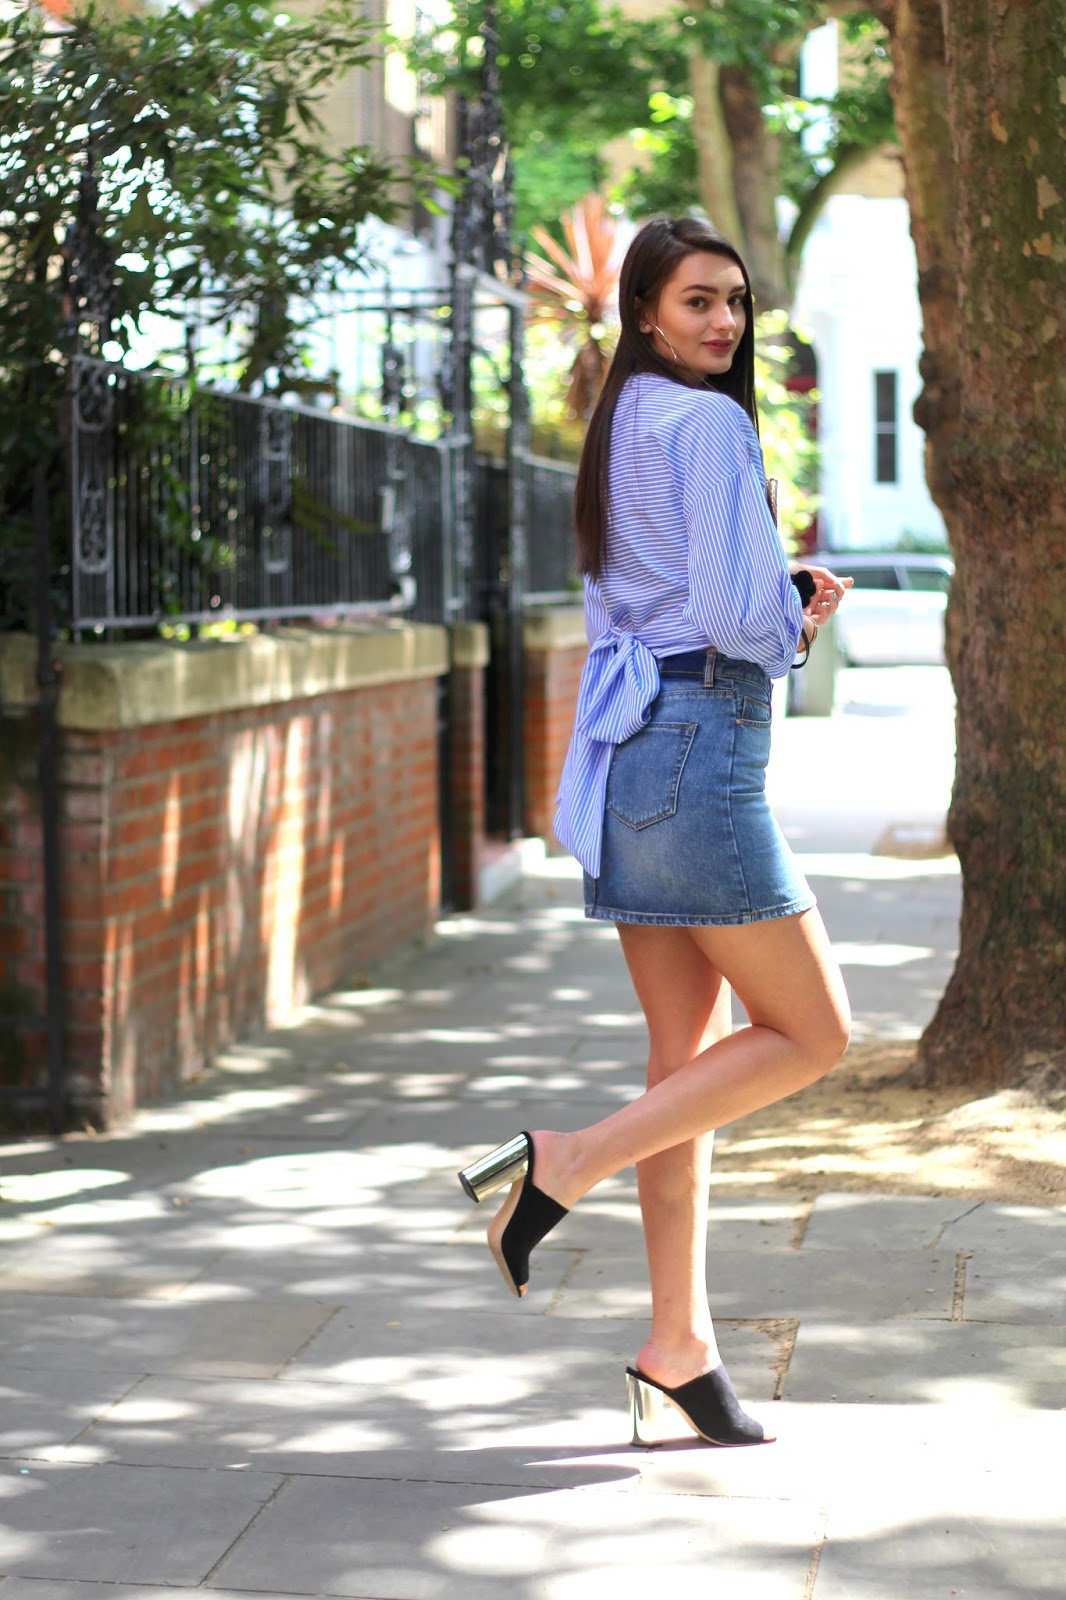 peexo london fashion blogger summer style